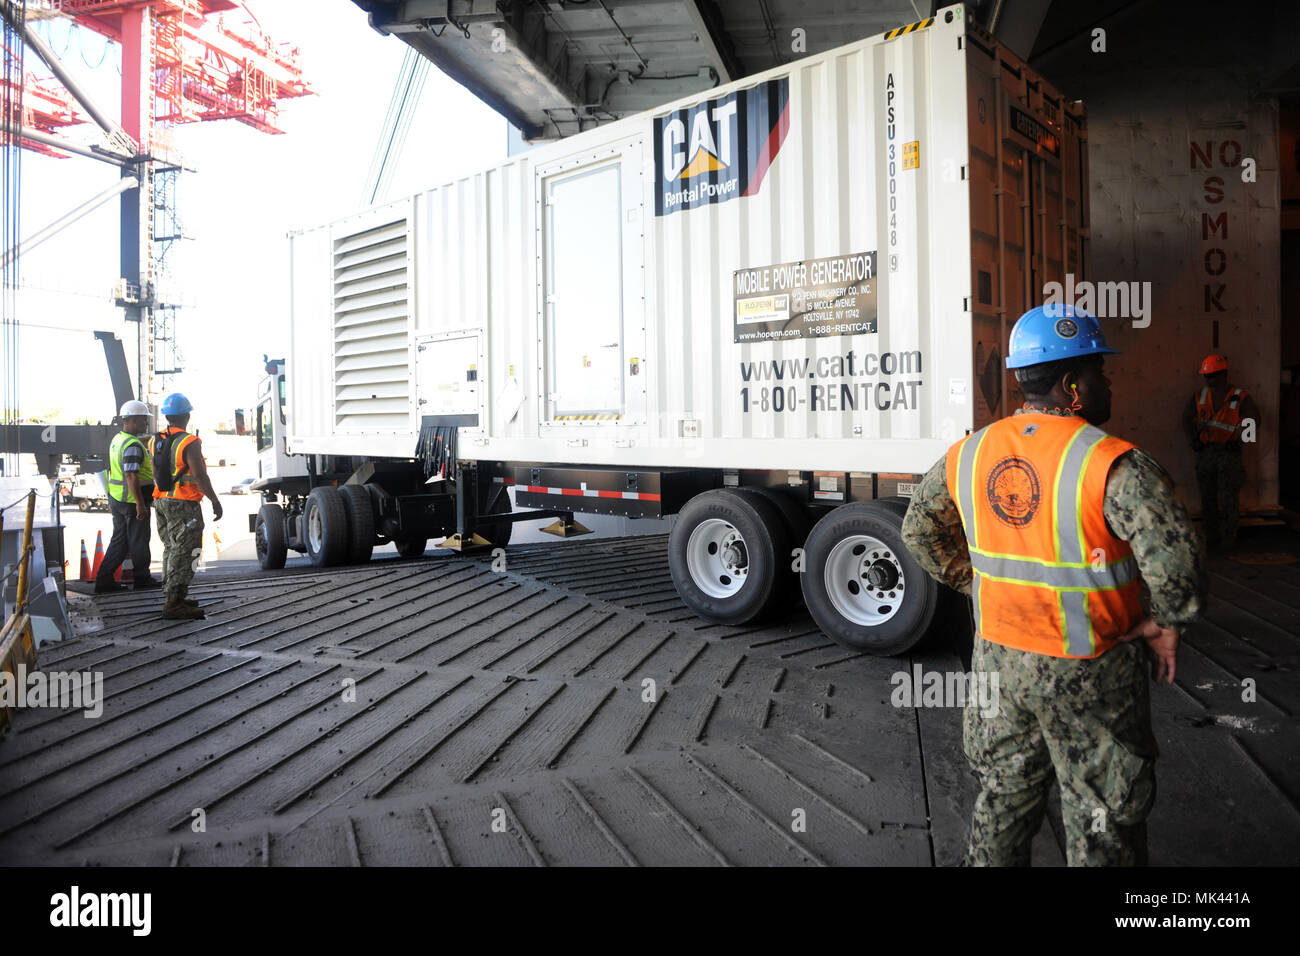 PONCE, Puerto Rico – A commercial sized mobile power